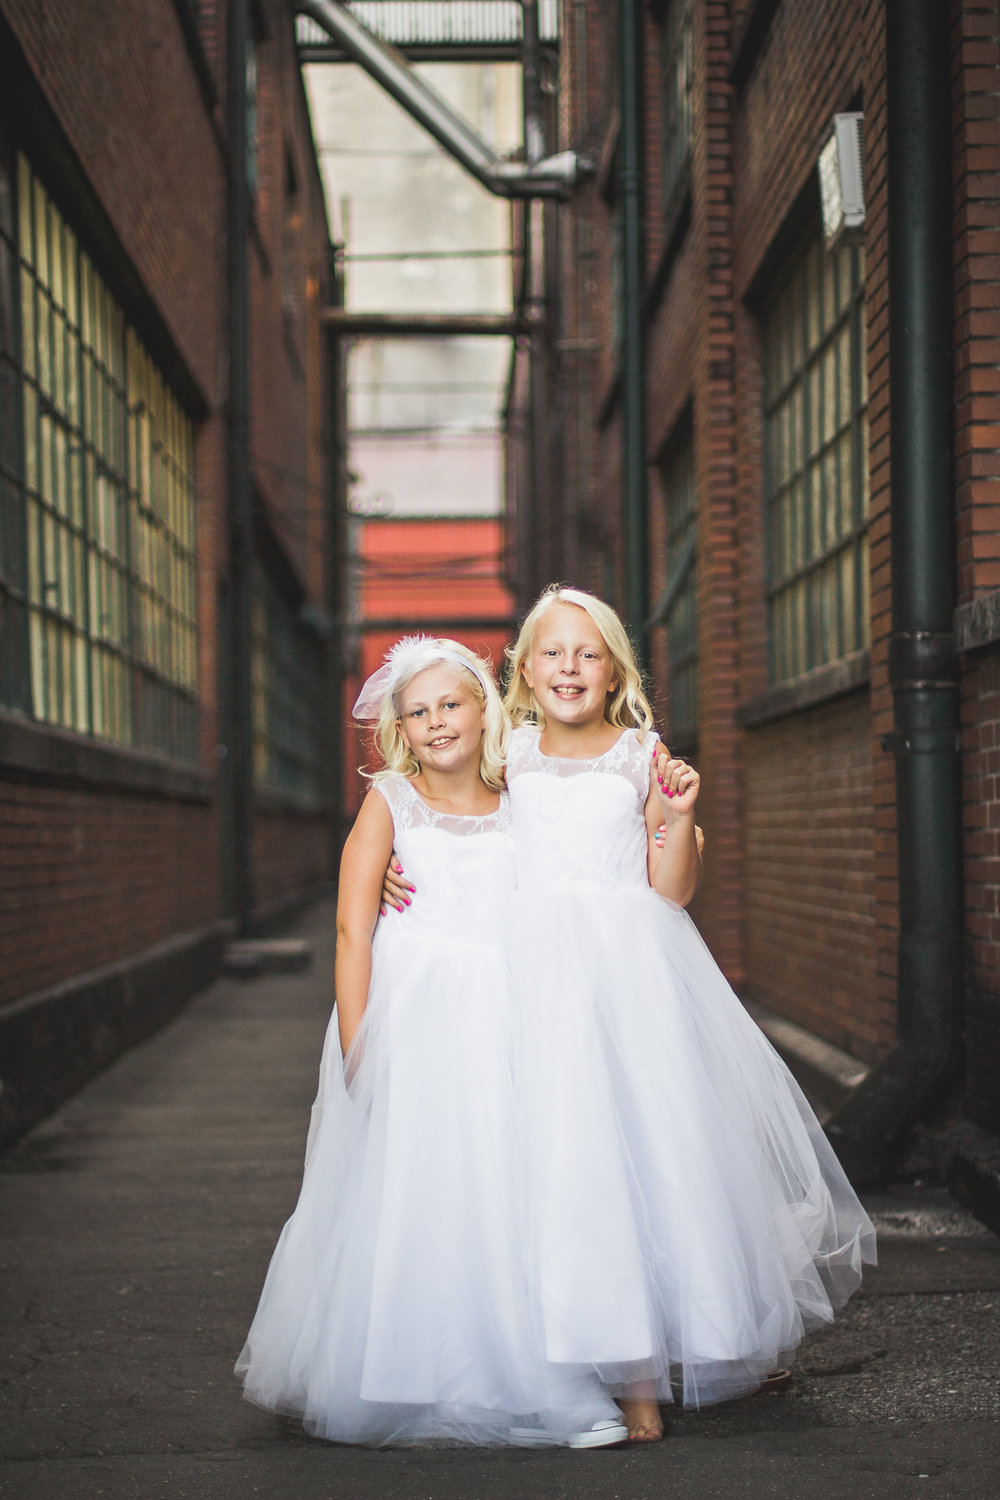 Richmond Kentucky Wedding Photographer - Ariana Jordan Photography -26-2.jpg